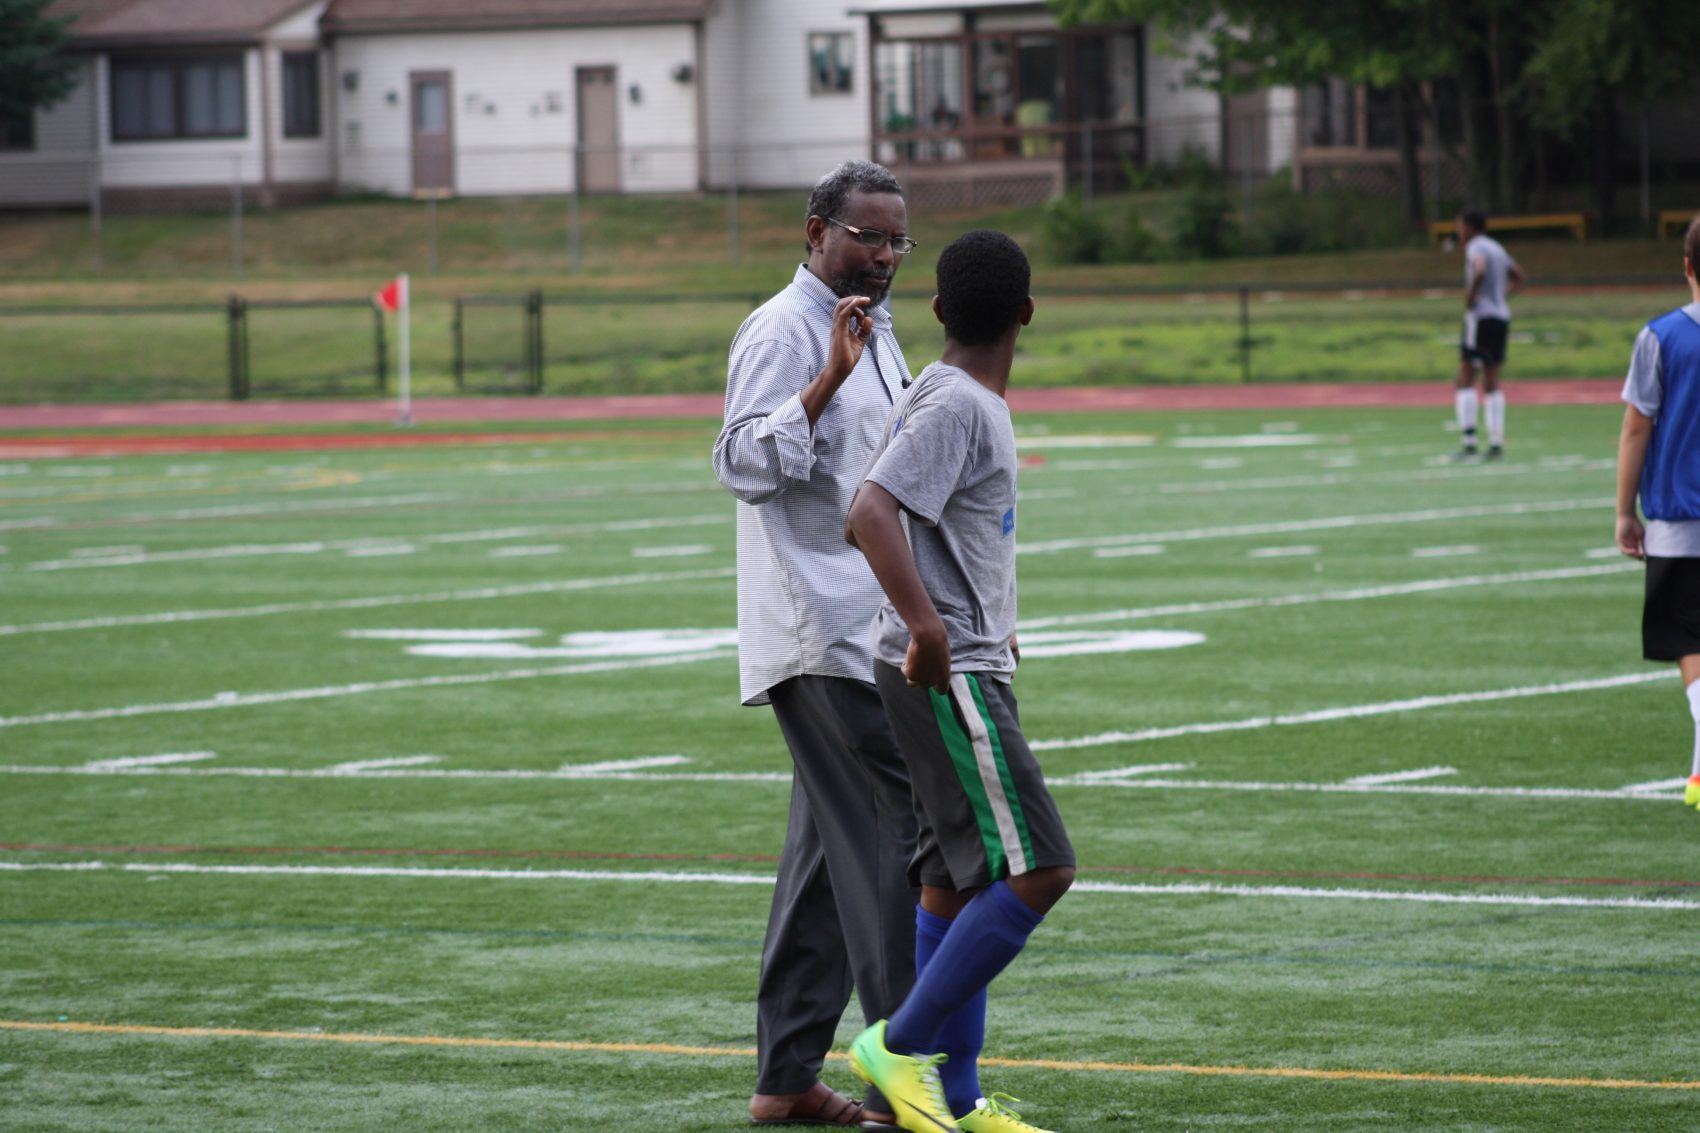 Assistant coach Abdijabar Hersi (left). (Courtesy of Amy Bass)